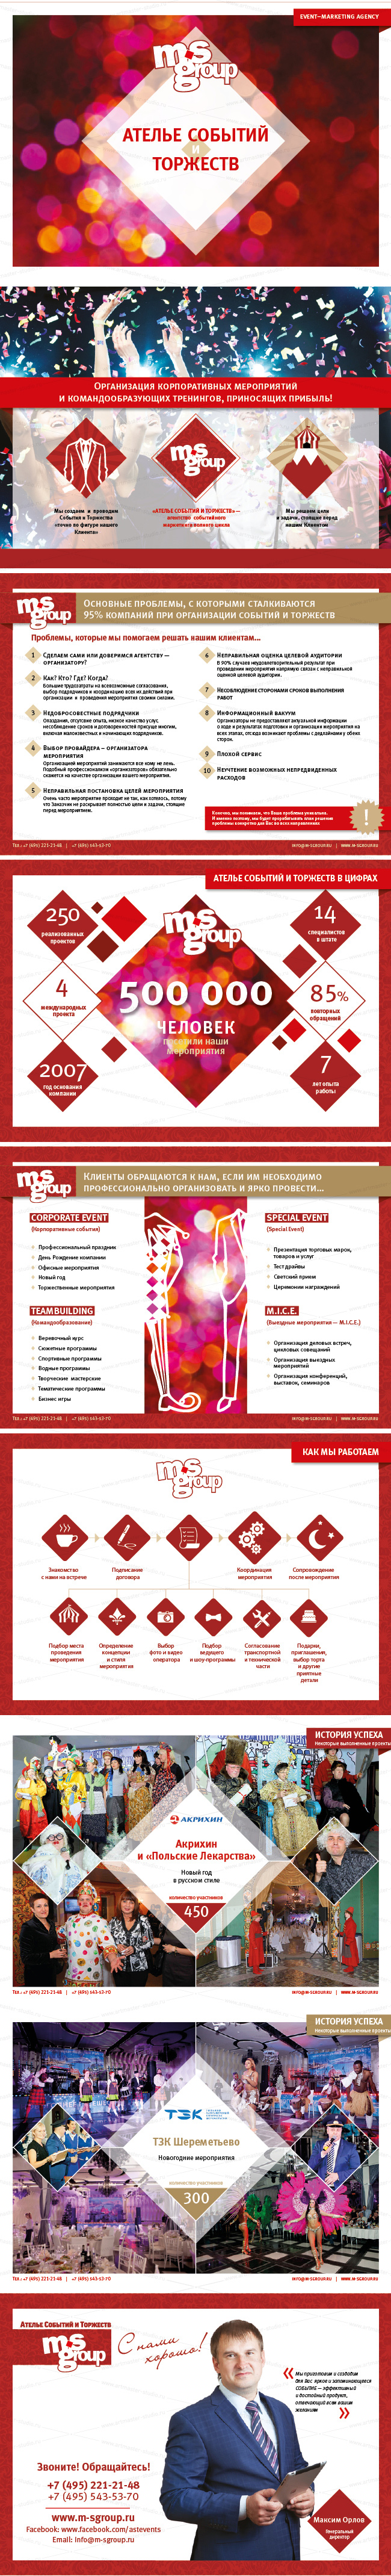 MS-Group_presentation